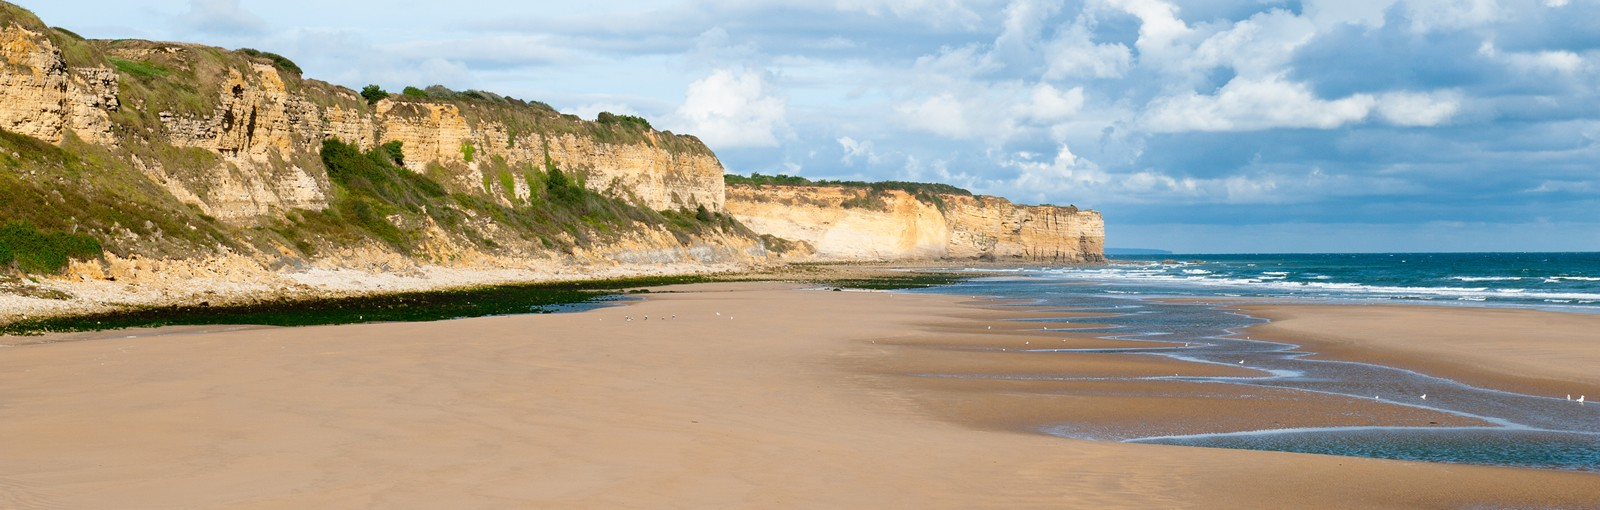 Tours Overnight to the Landing beaches of Normandy - Normandy - Multiday tours from Paris